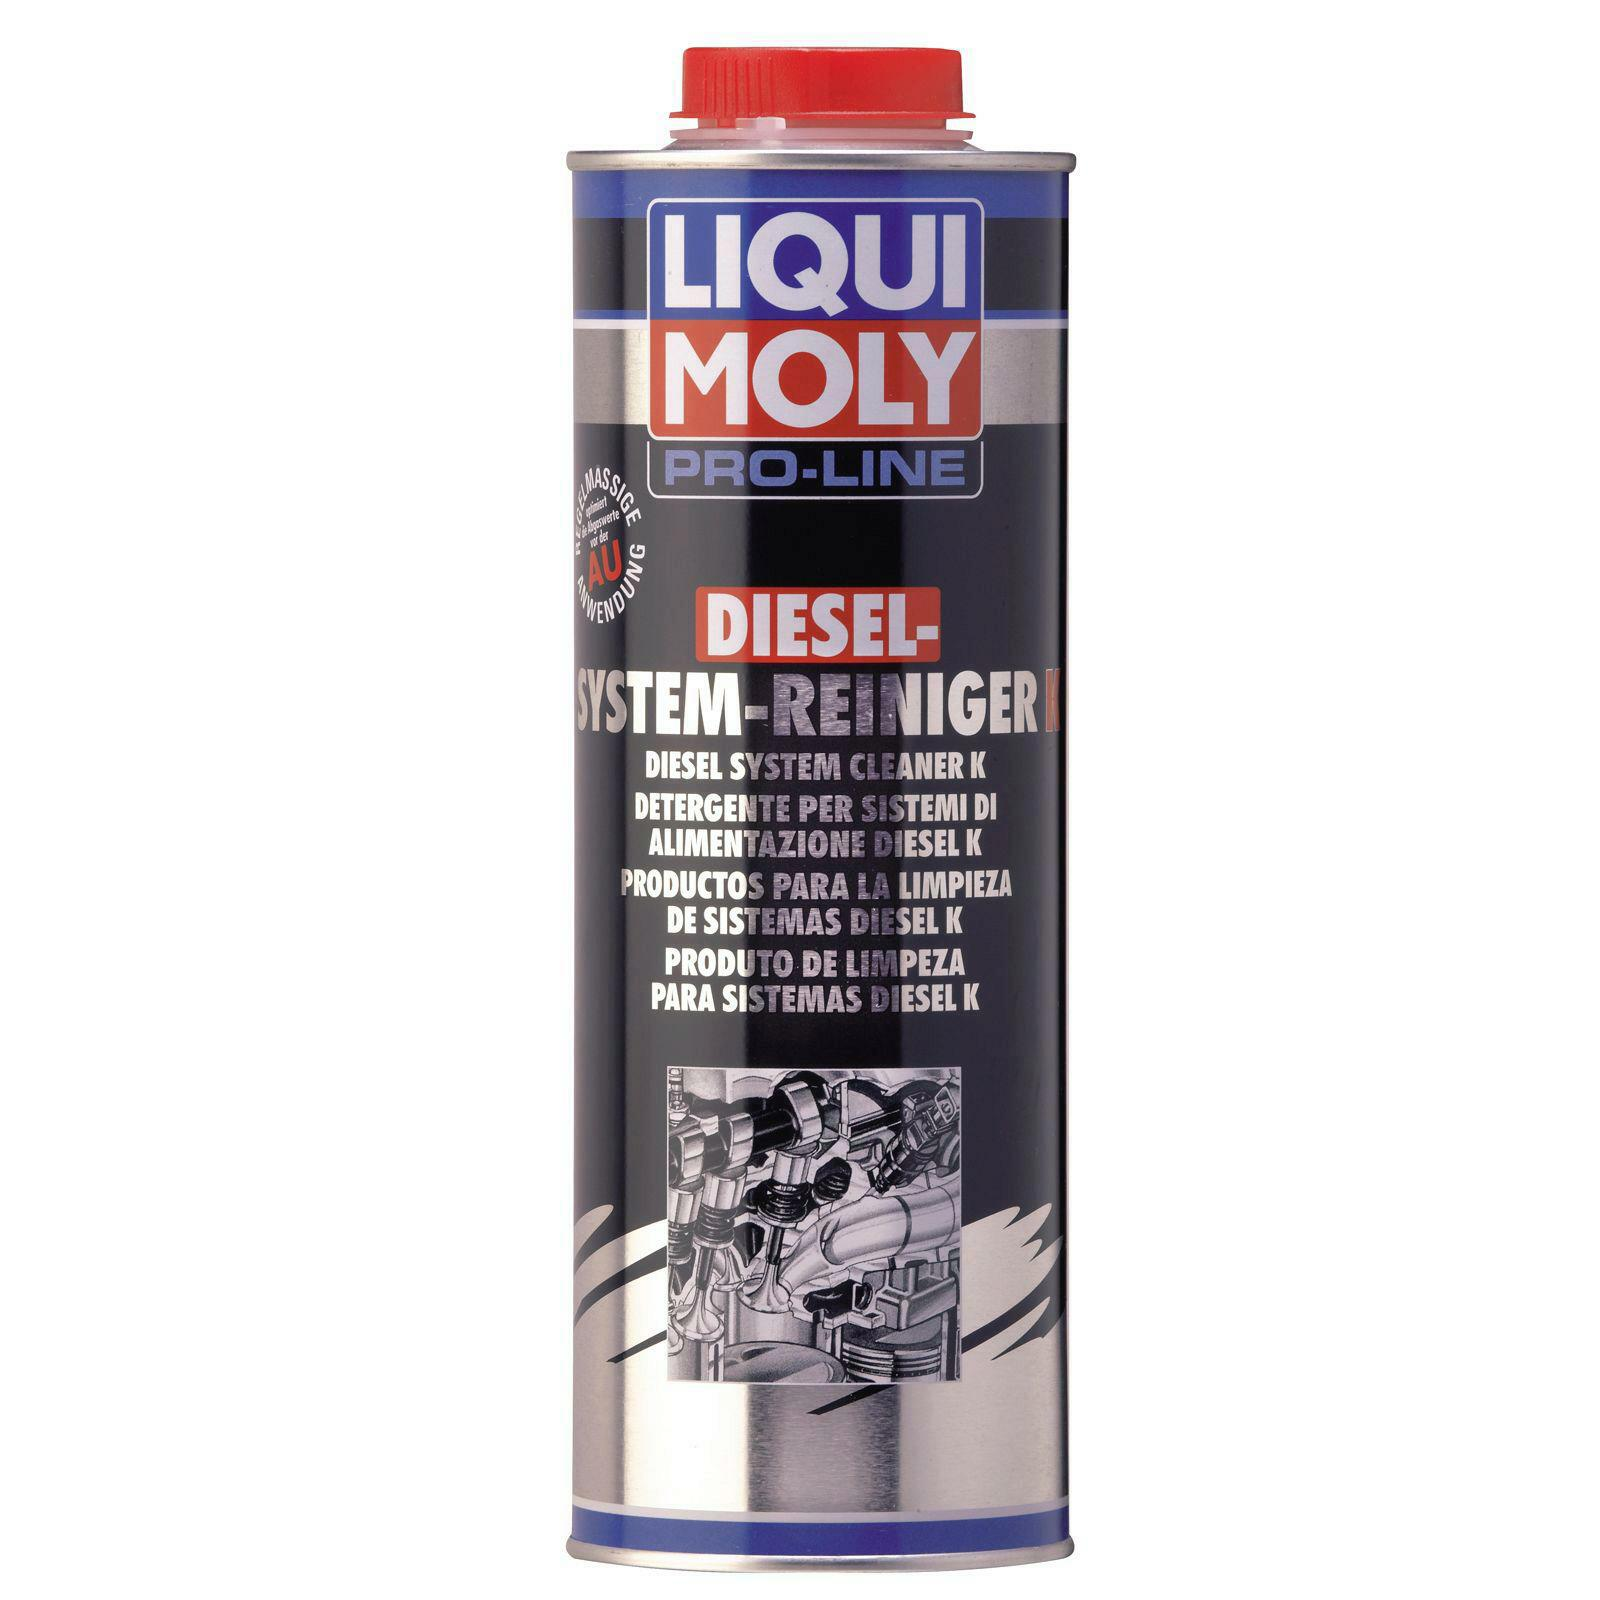 liqui moly pro line diesel system reiniger k 1l 5144 xz79586 23 49 lott. Black Bedroom Furniture Sets. Home Design Ideas